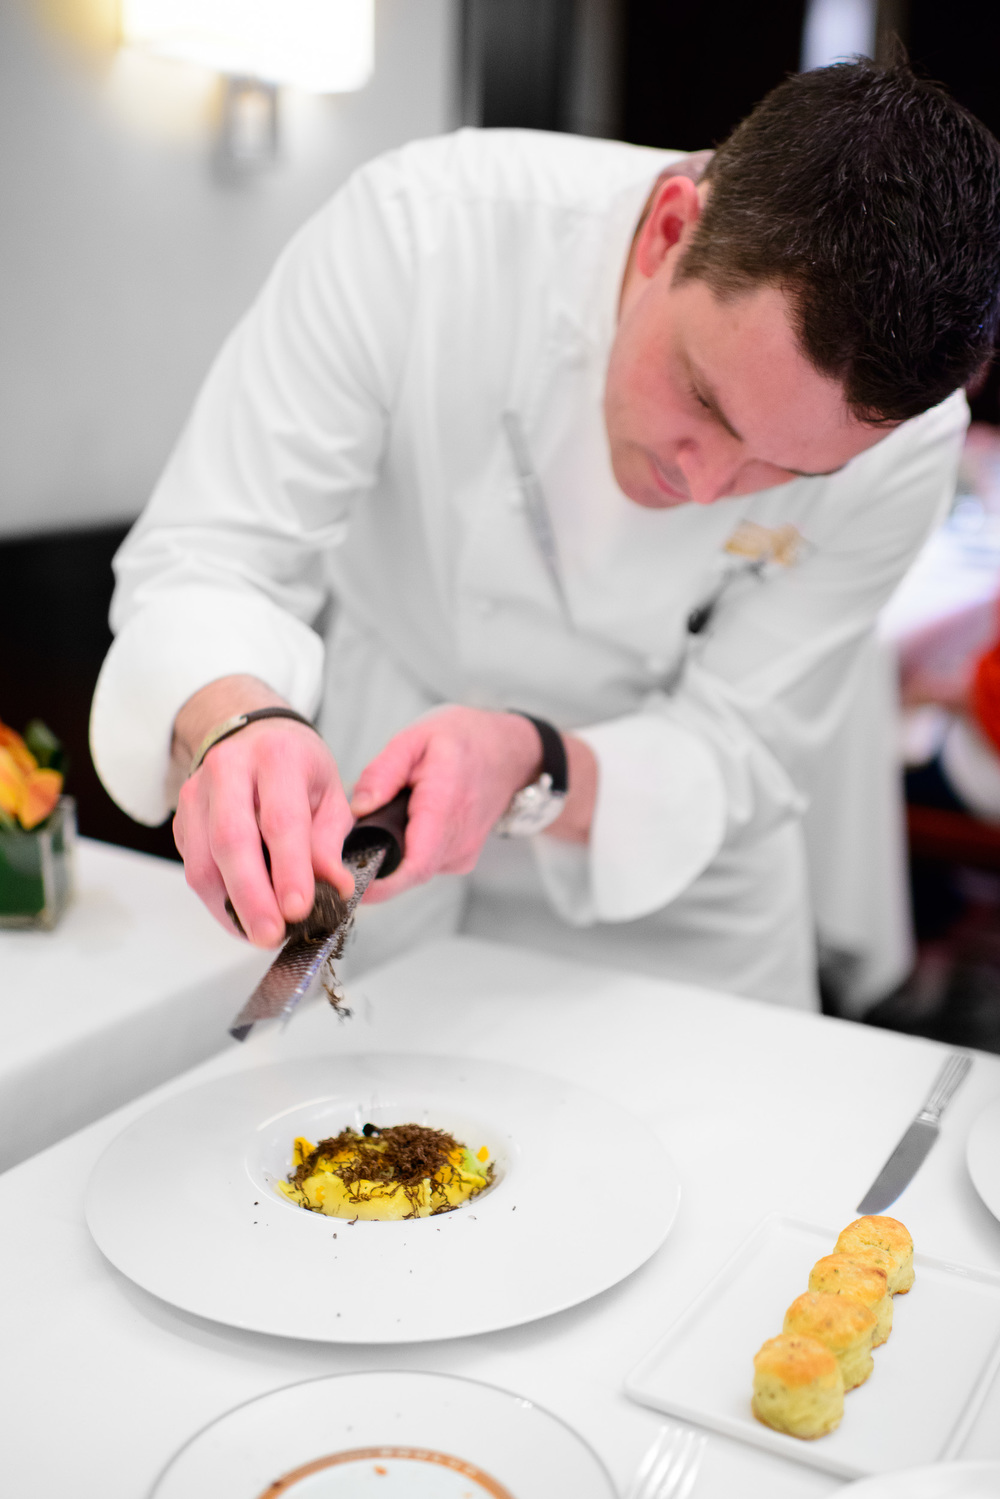 Chef Gavin Kaysen shaving black truffle over the celery root agn